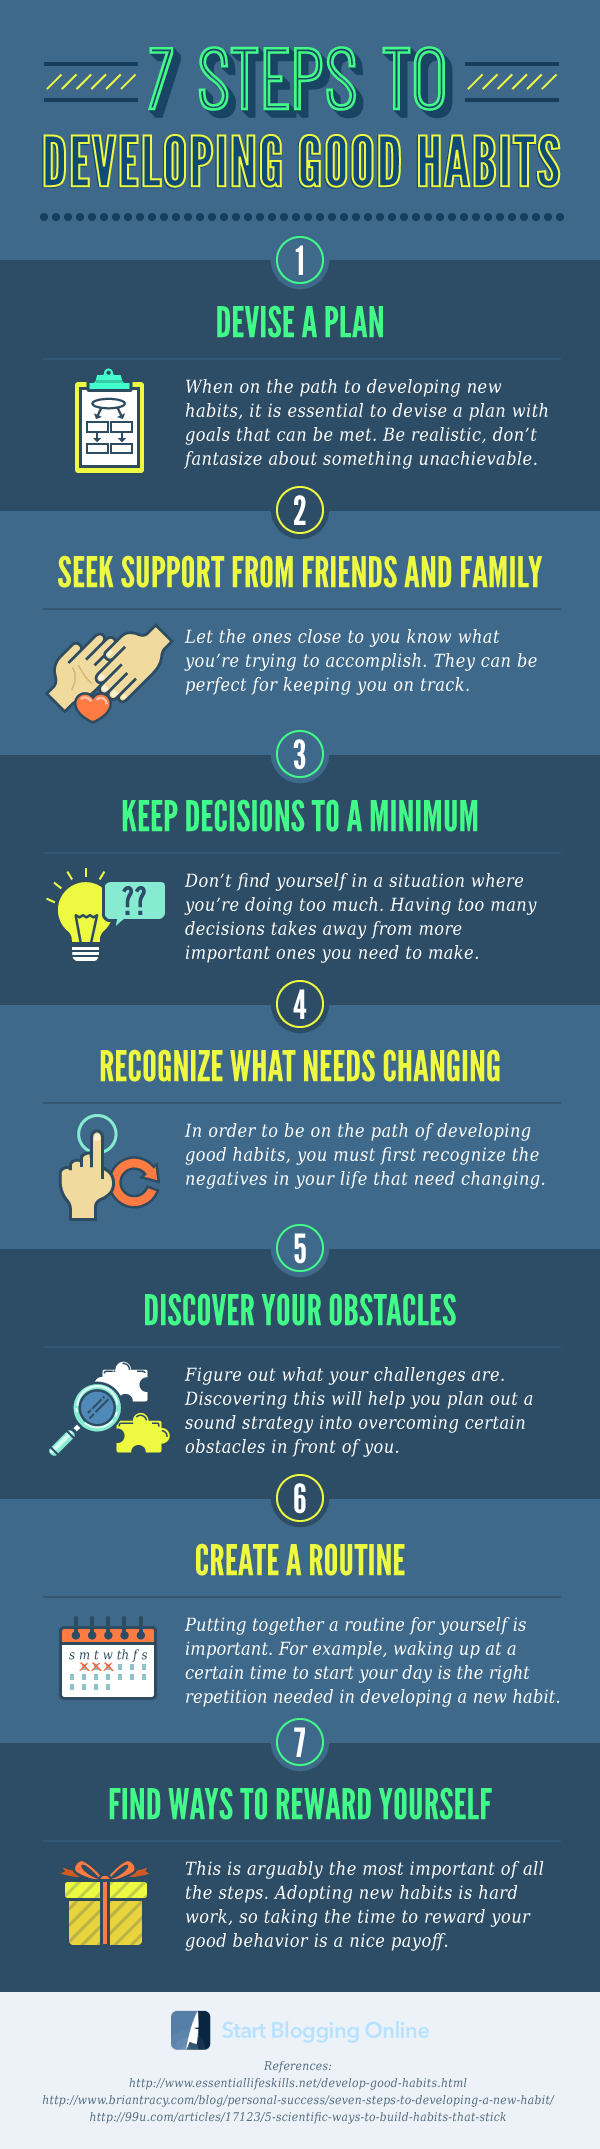 7 Steps to Developing Good Habits (SBO)